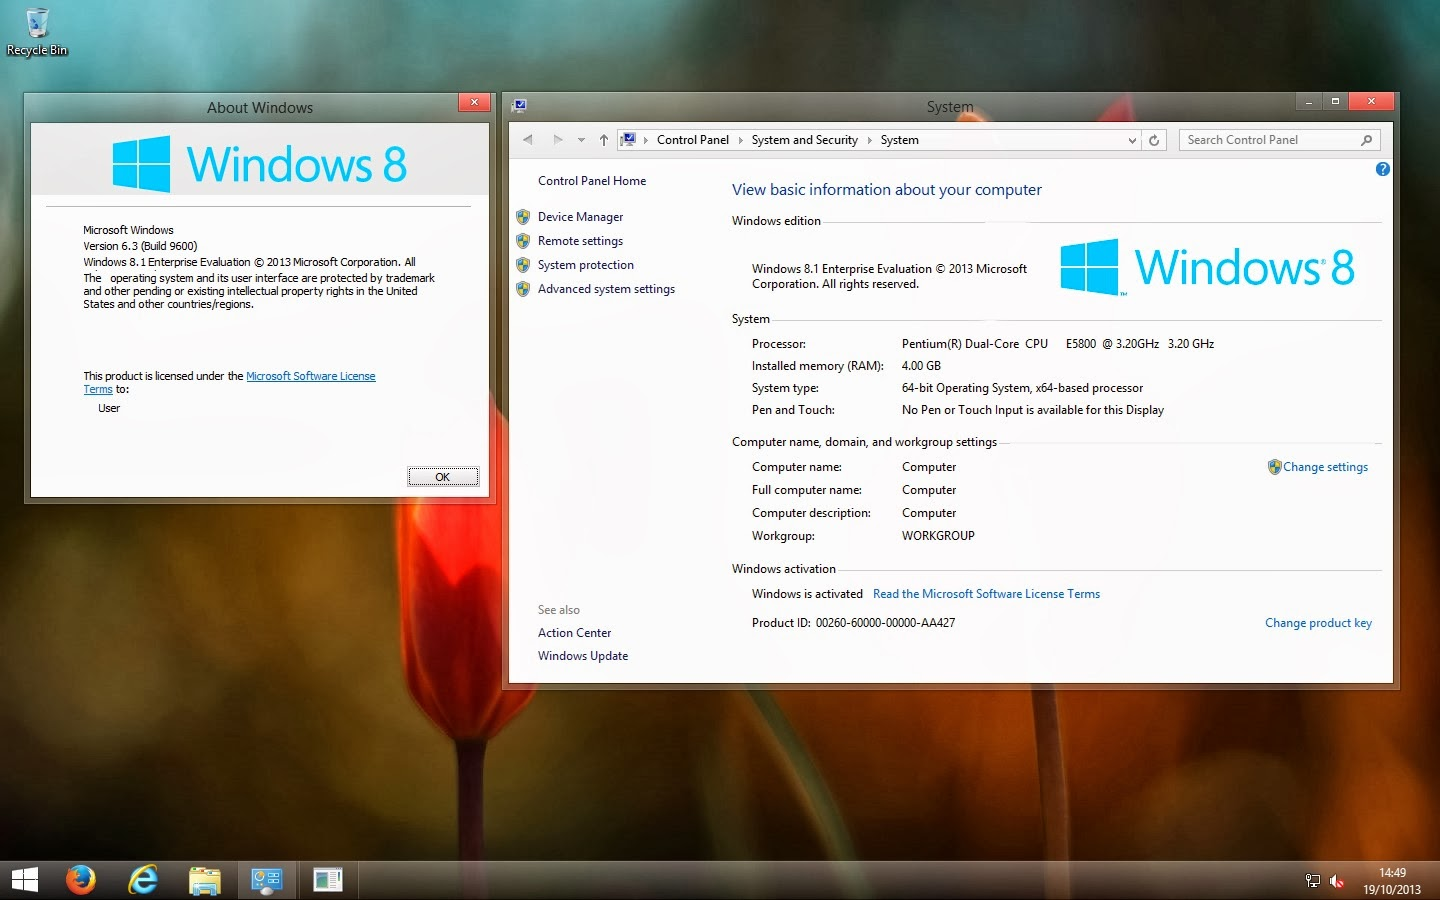 How to Remove watermark from Windows 81 Enterprise Evaluation 1440x900